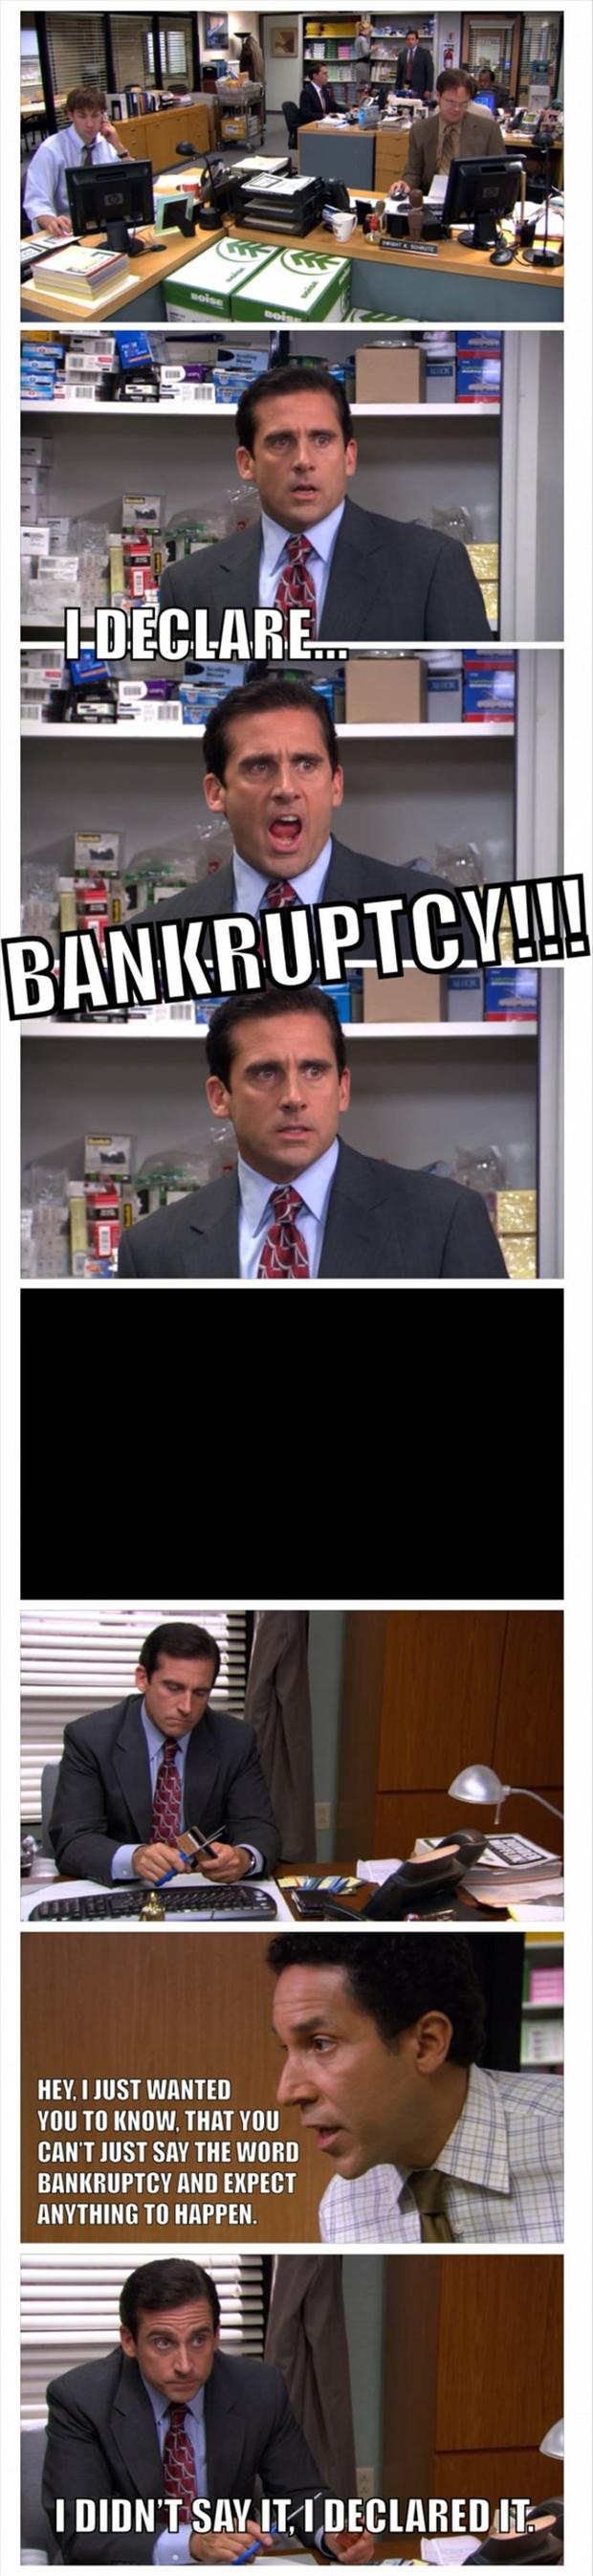 Funny Office Tv Show Quotes Office Humor Office Memes The Office Show